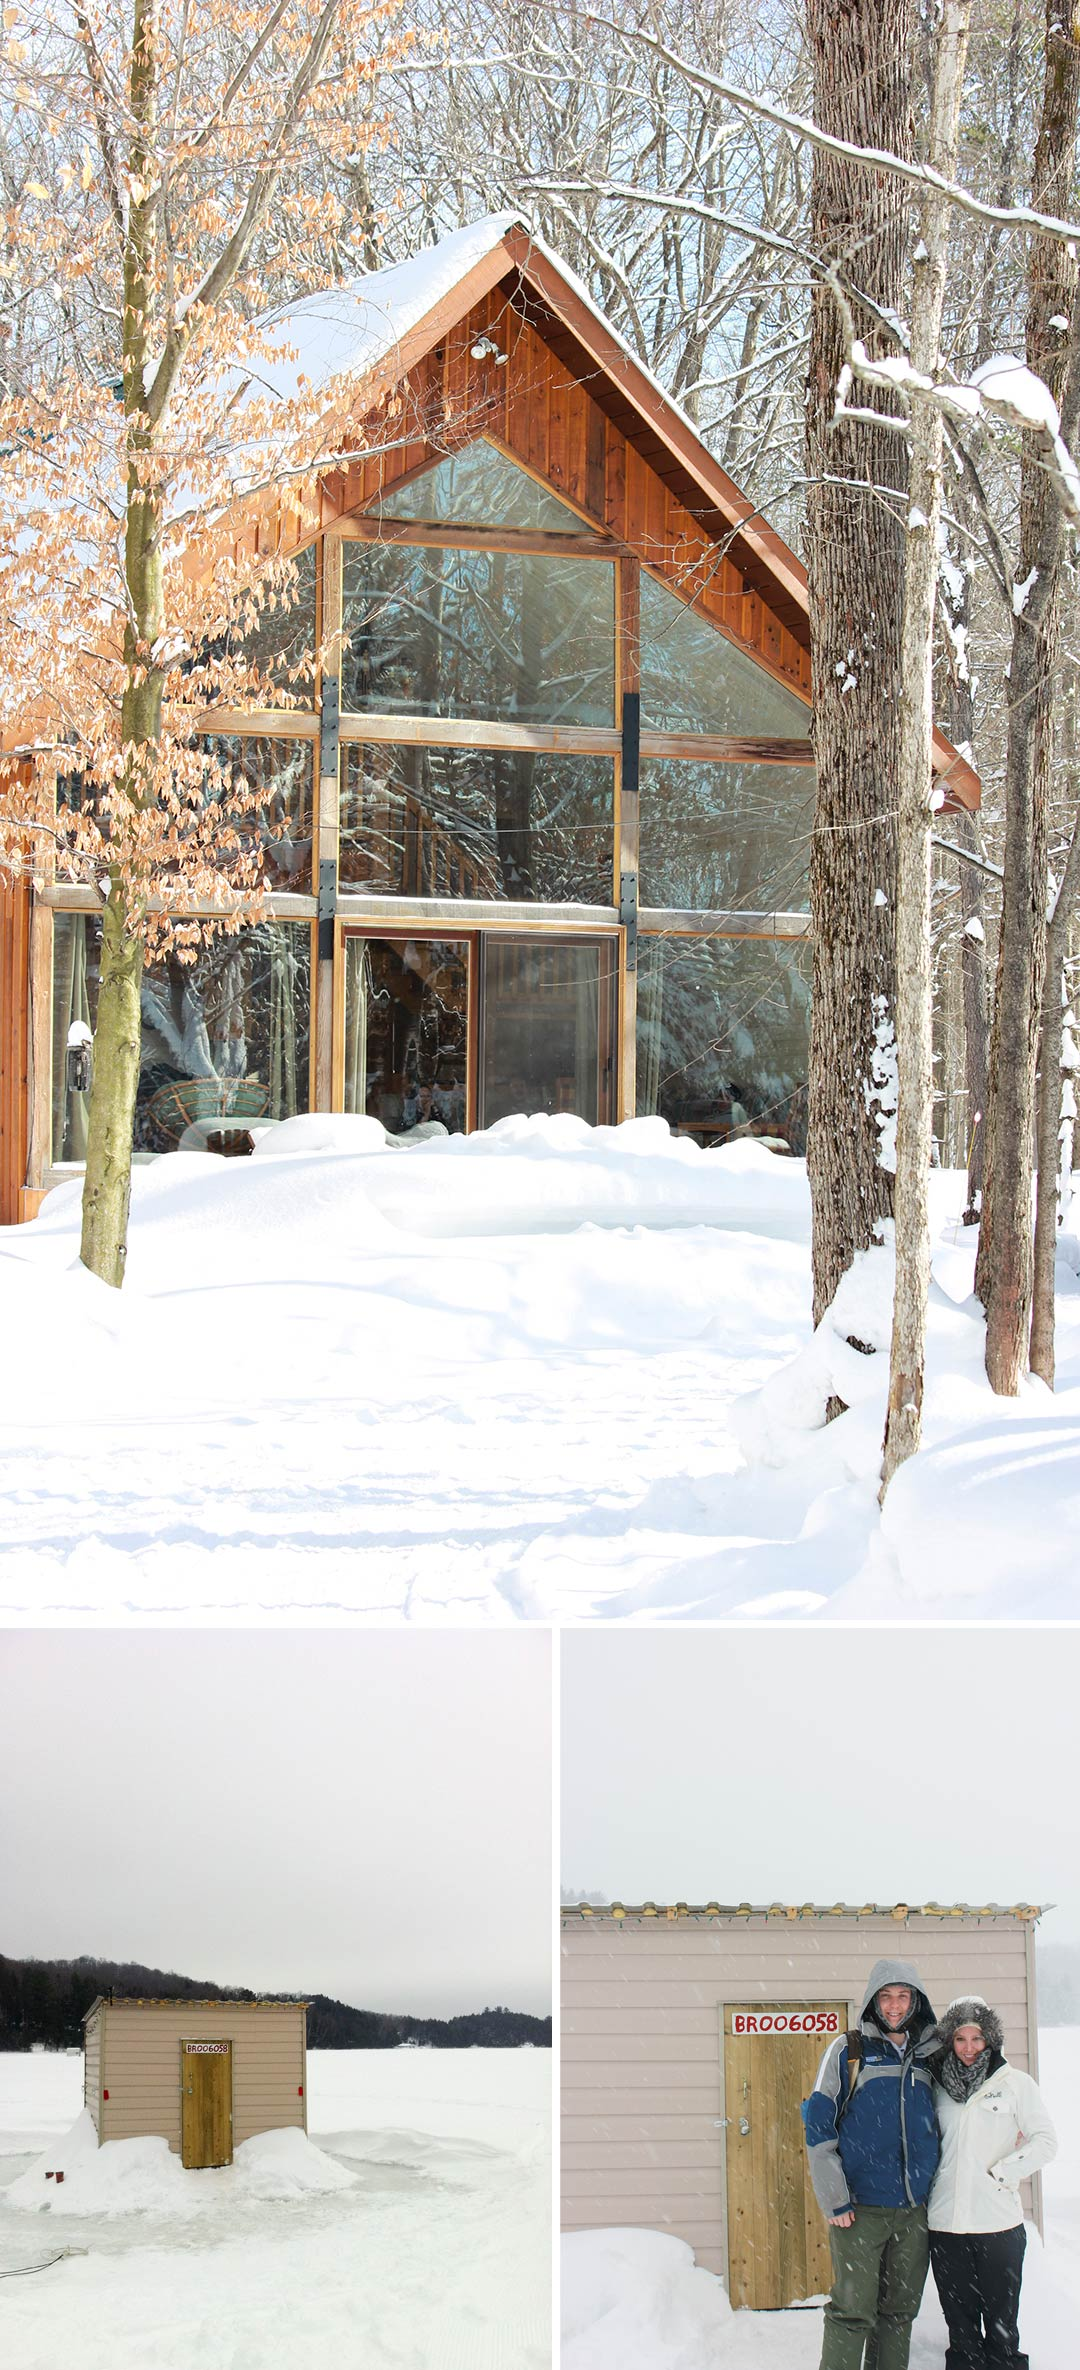 Muskoka: A Wintery Weekend Getaway